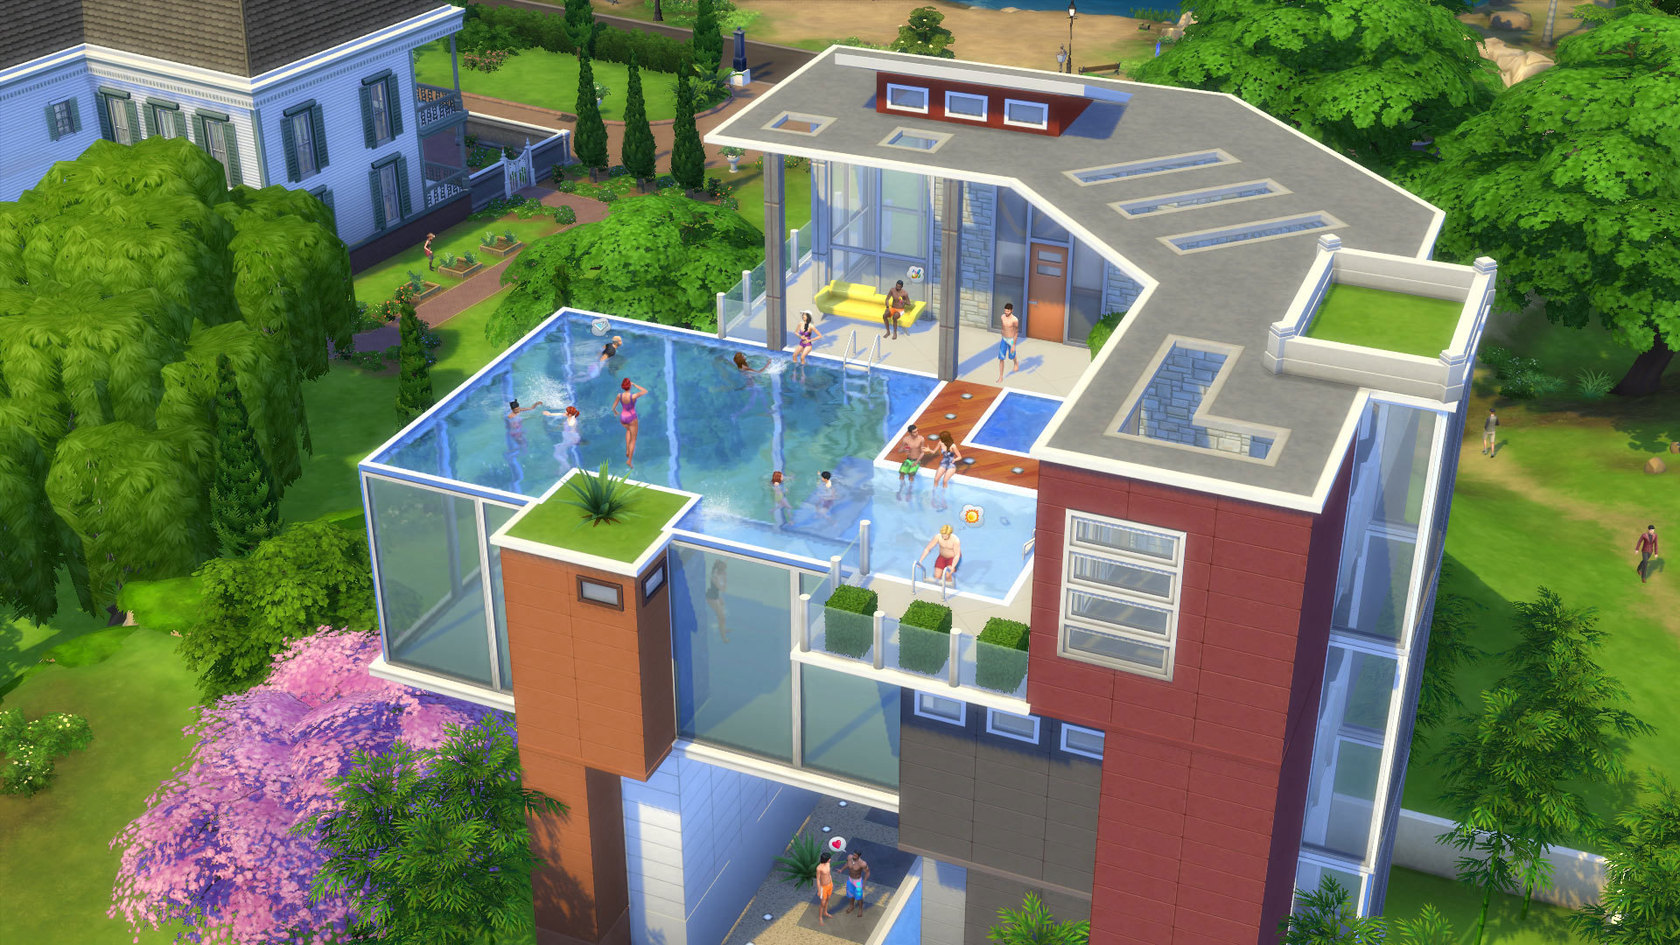 The sims 4 for Pool design sims 3